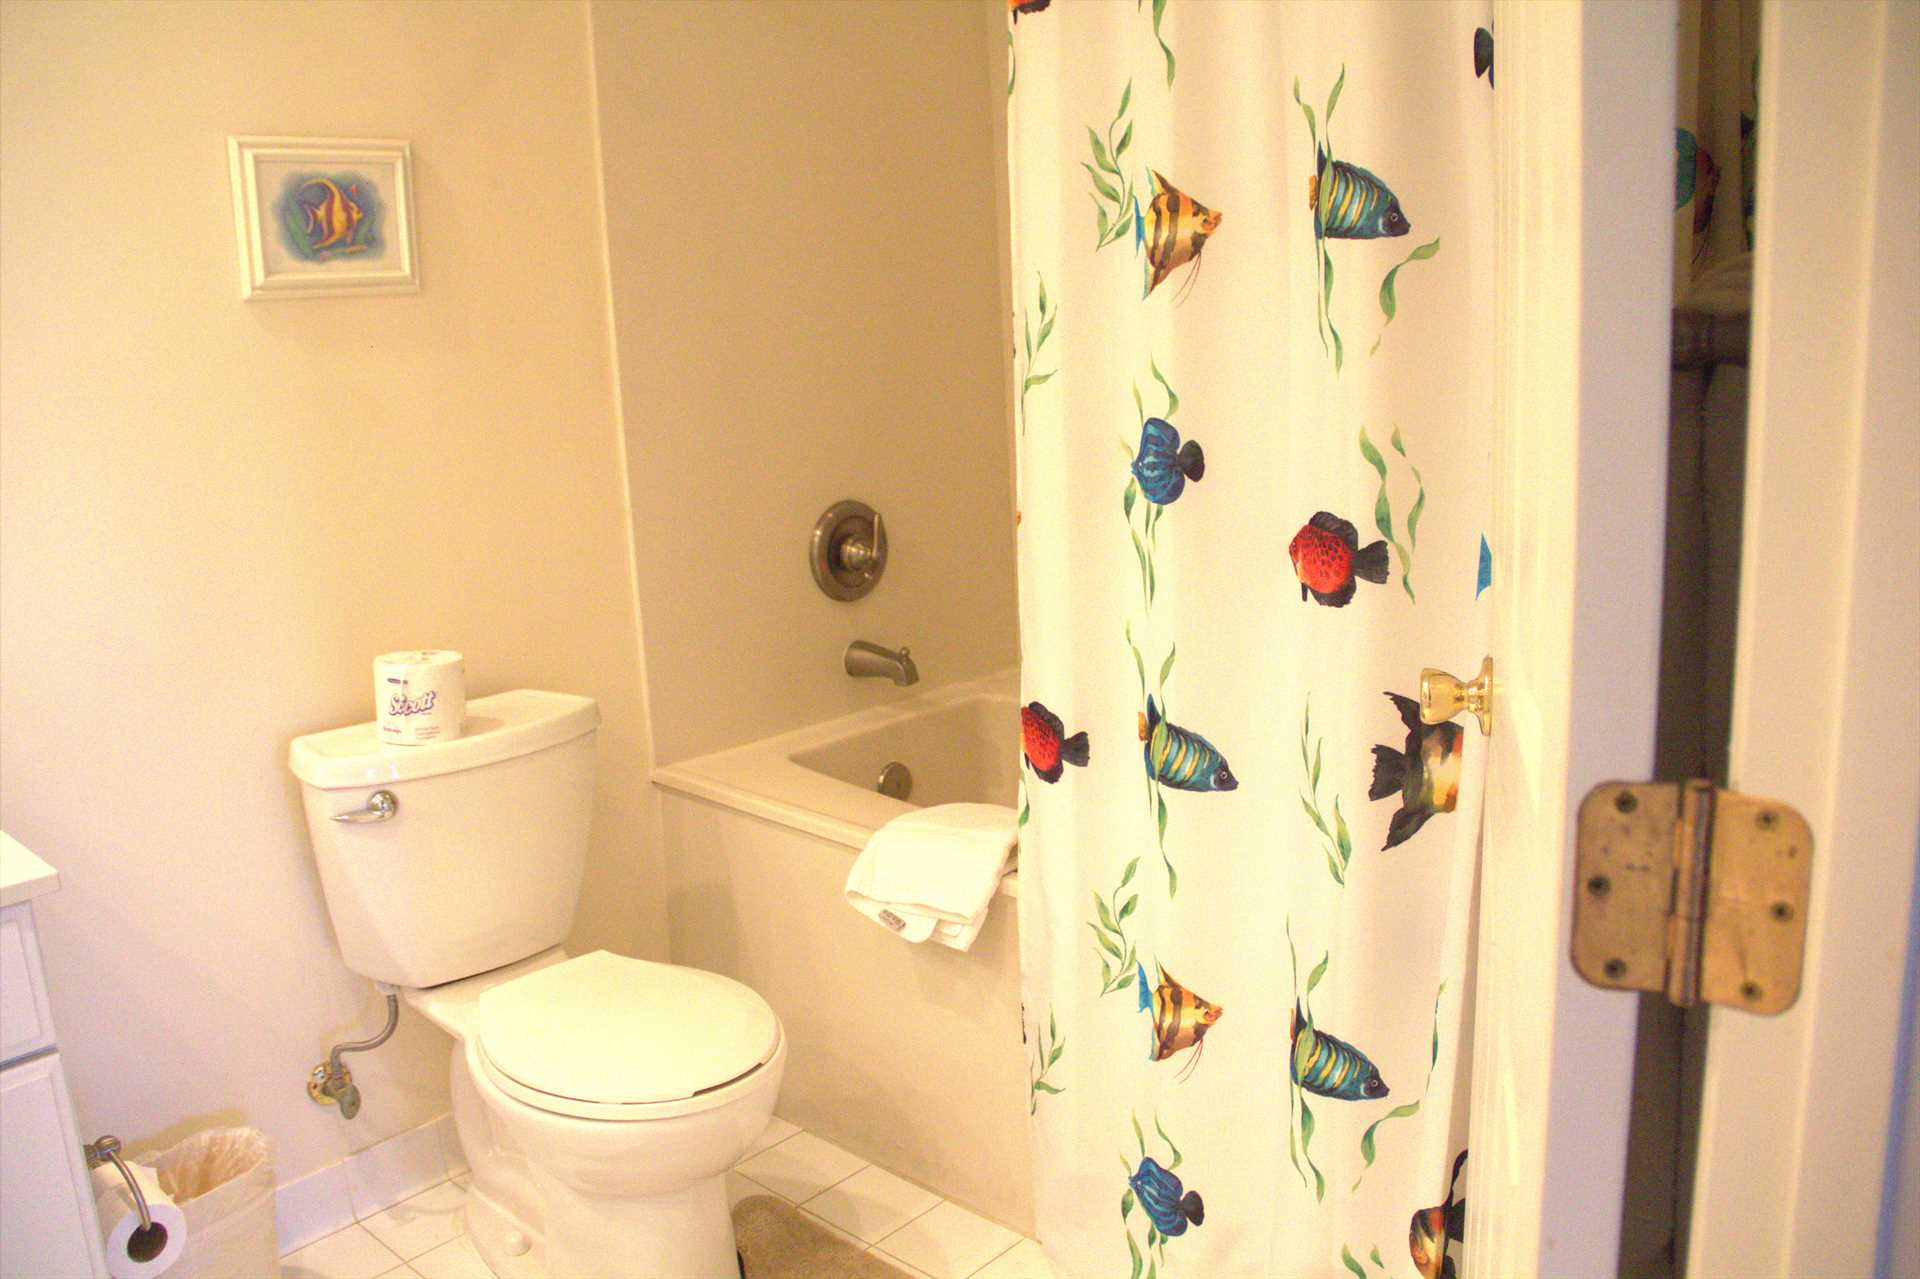 Across the hall from the 2nd bedroom is the 2nd full bath